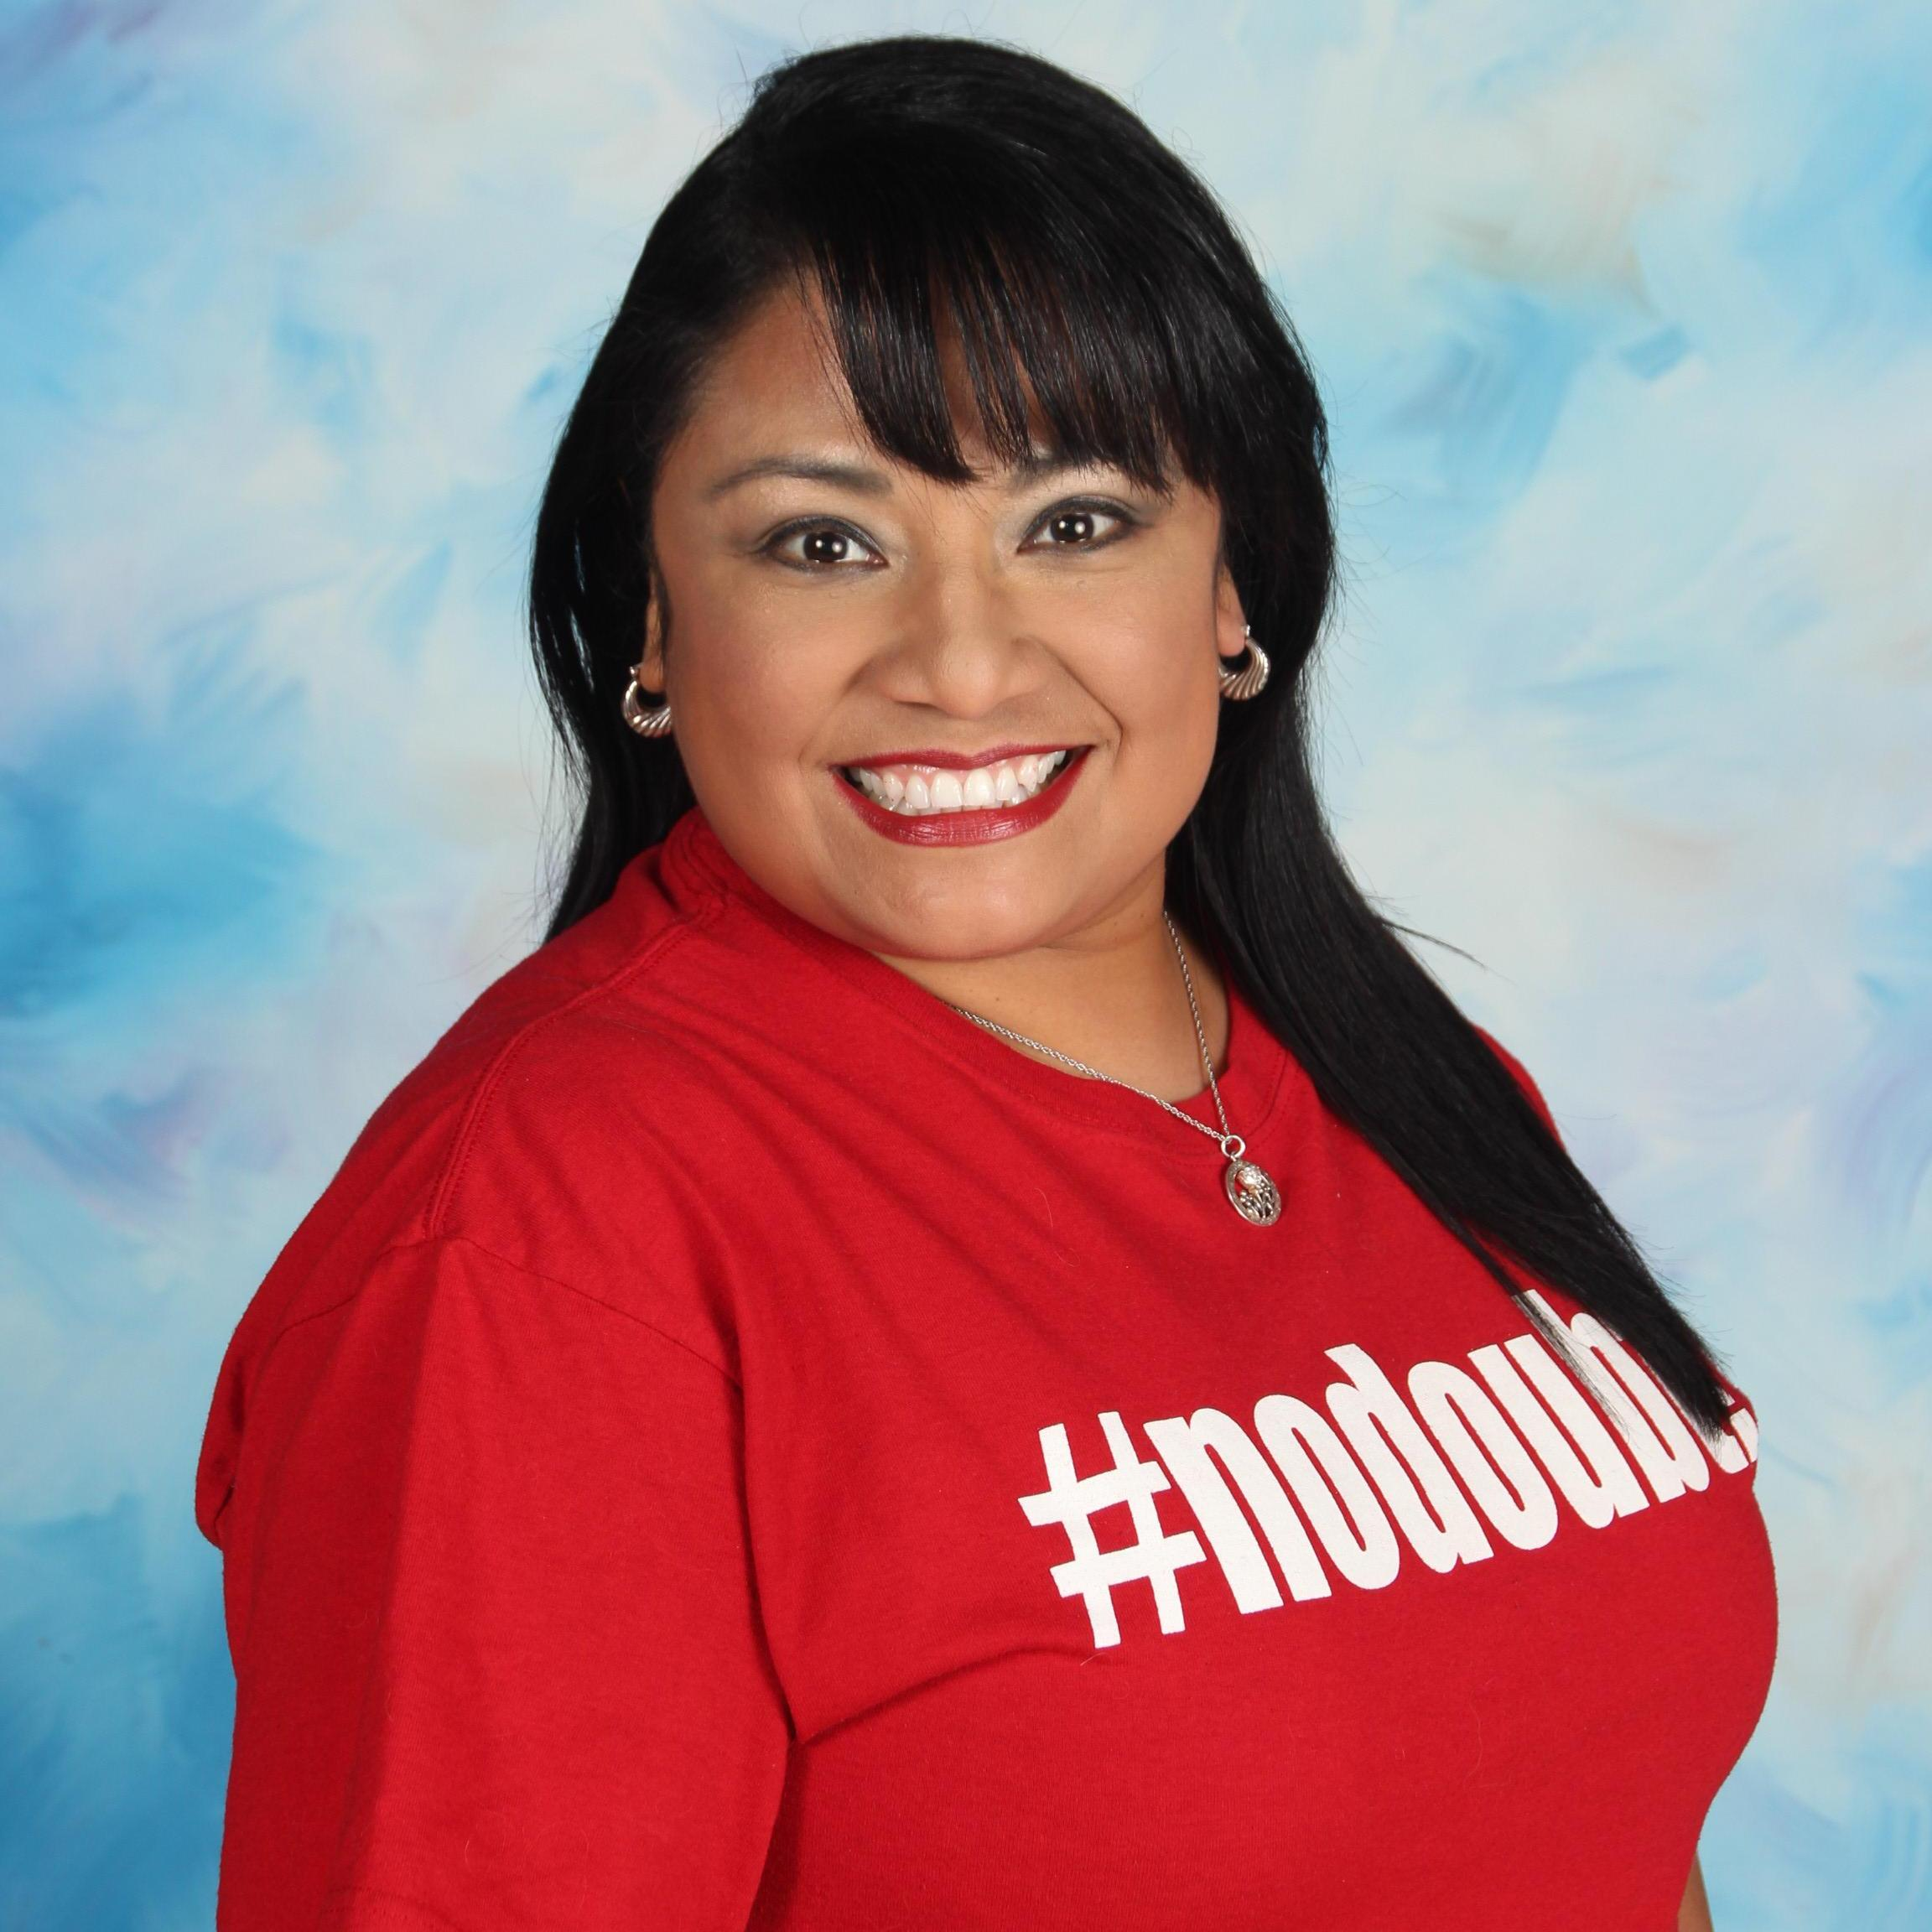 Guadalupe Meador's Profile Photo